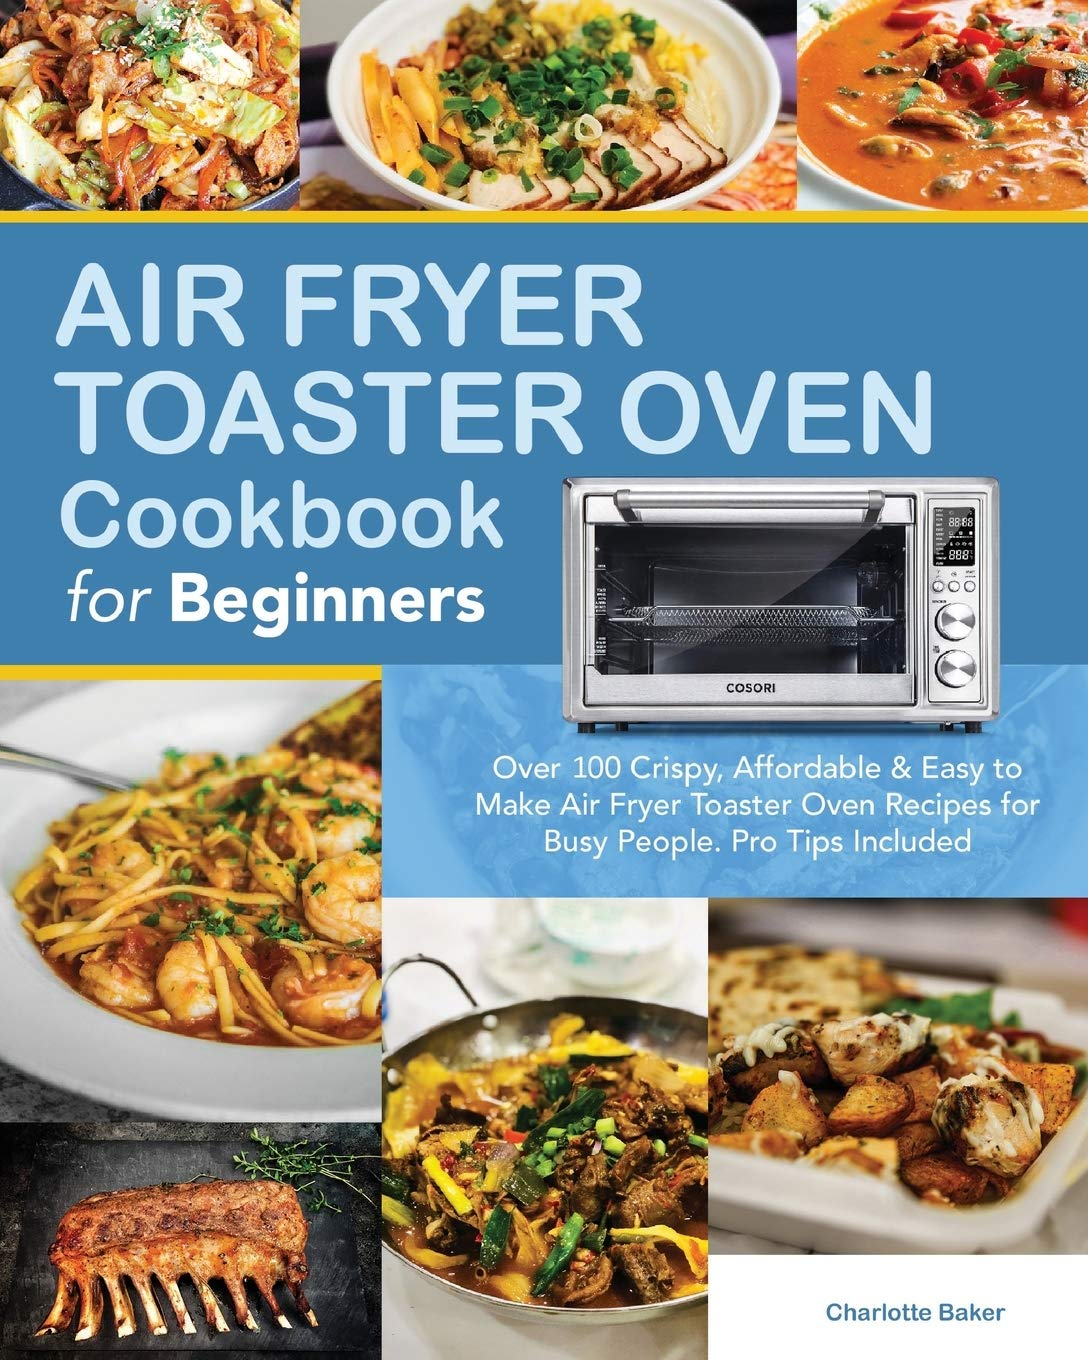 Air Fryer Toaster Oven Cookbook for Beginners: Over 100 Crispy, Affordable & Easy to Make Air Fryer Toaster Oven Recipes for Busy People. Pro Tips Included.